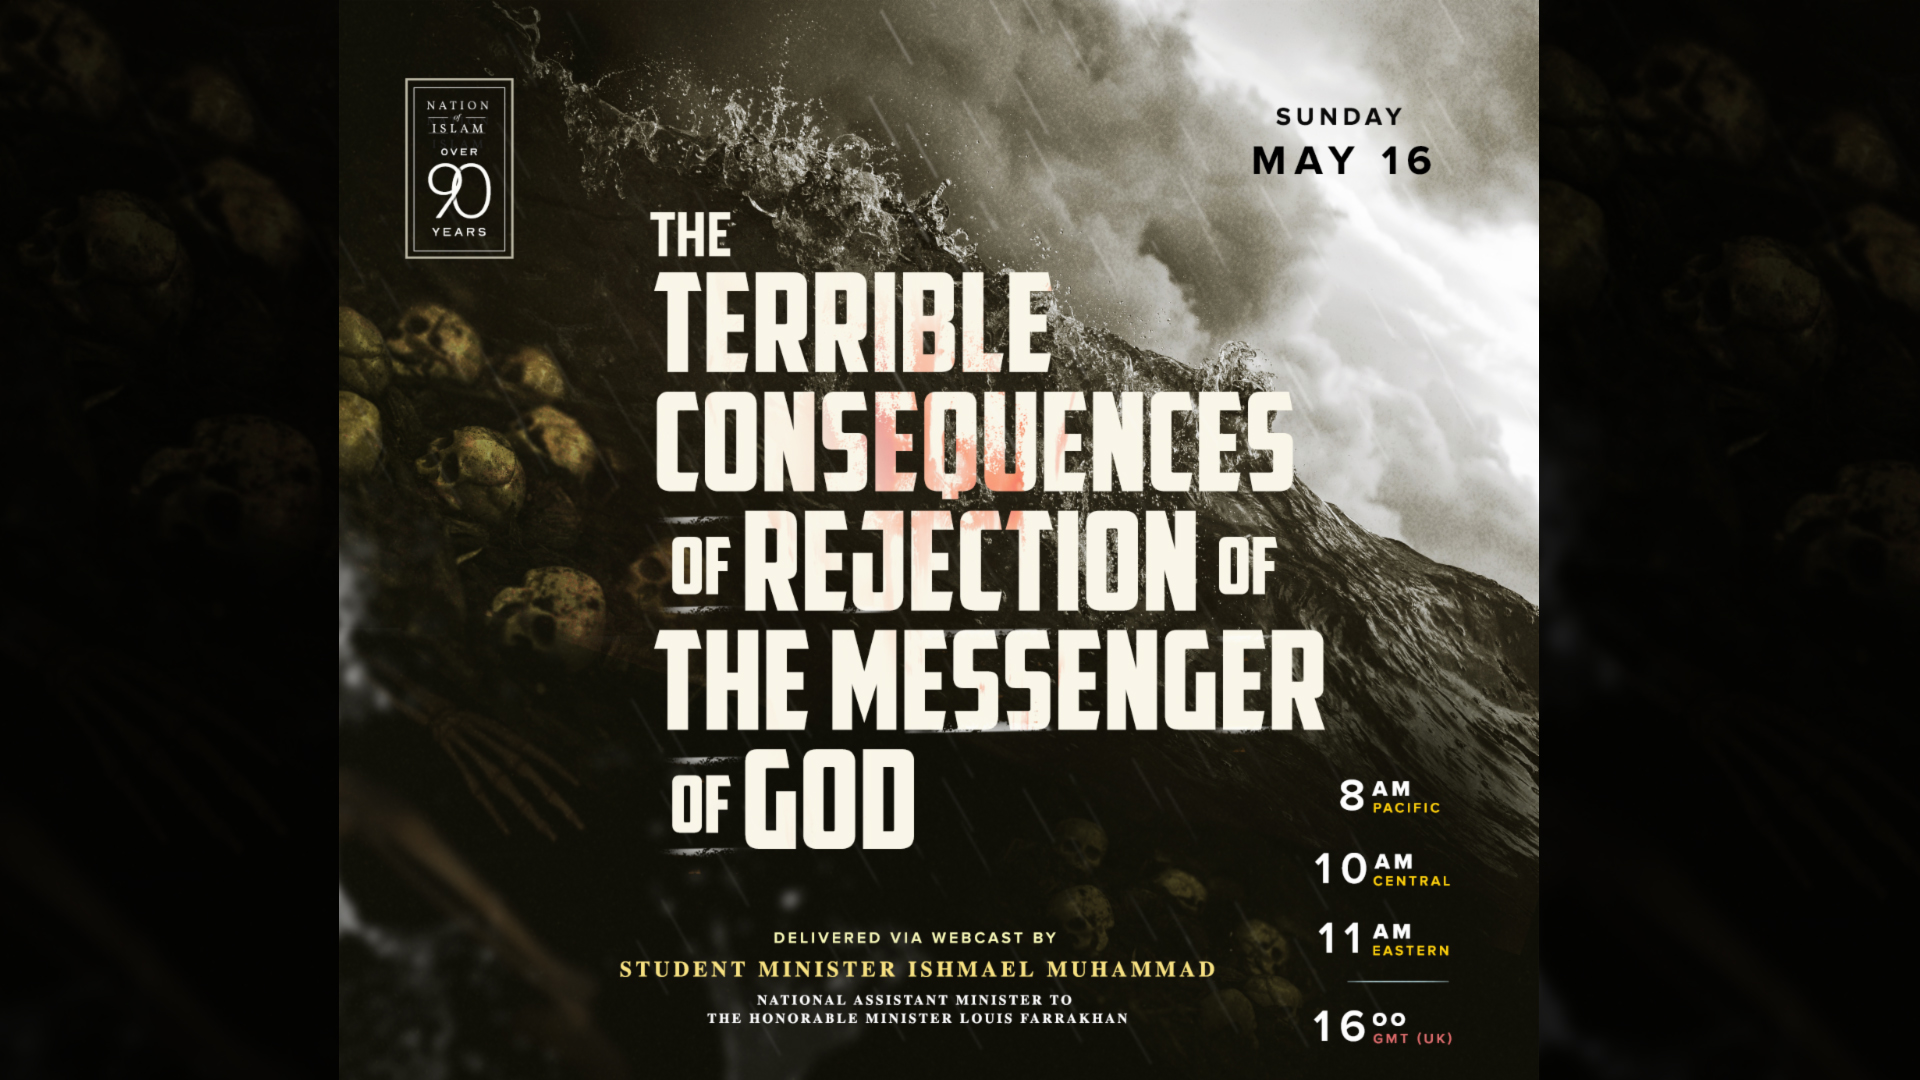 Terrible Consequences of Rejection of The Messenger of God